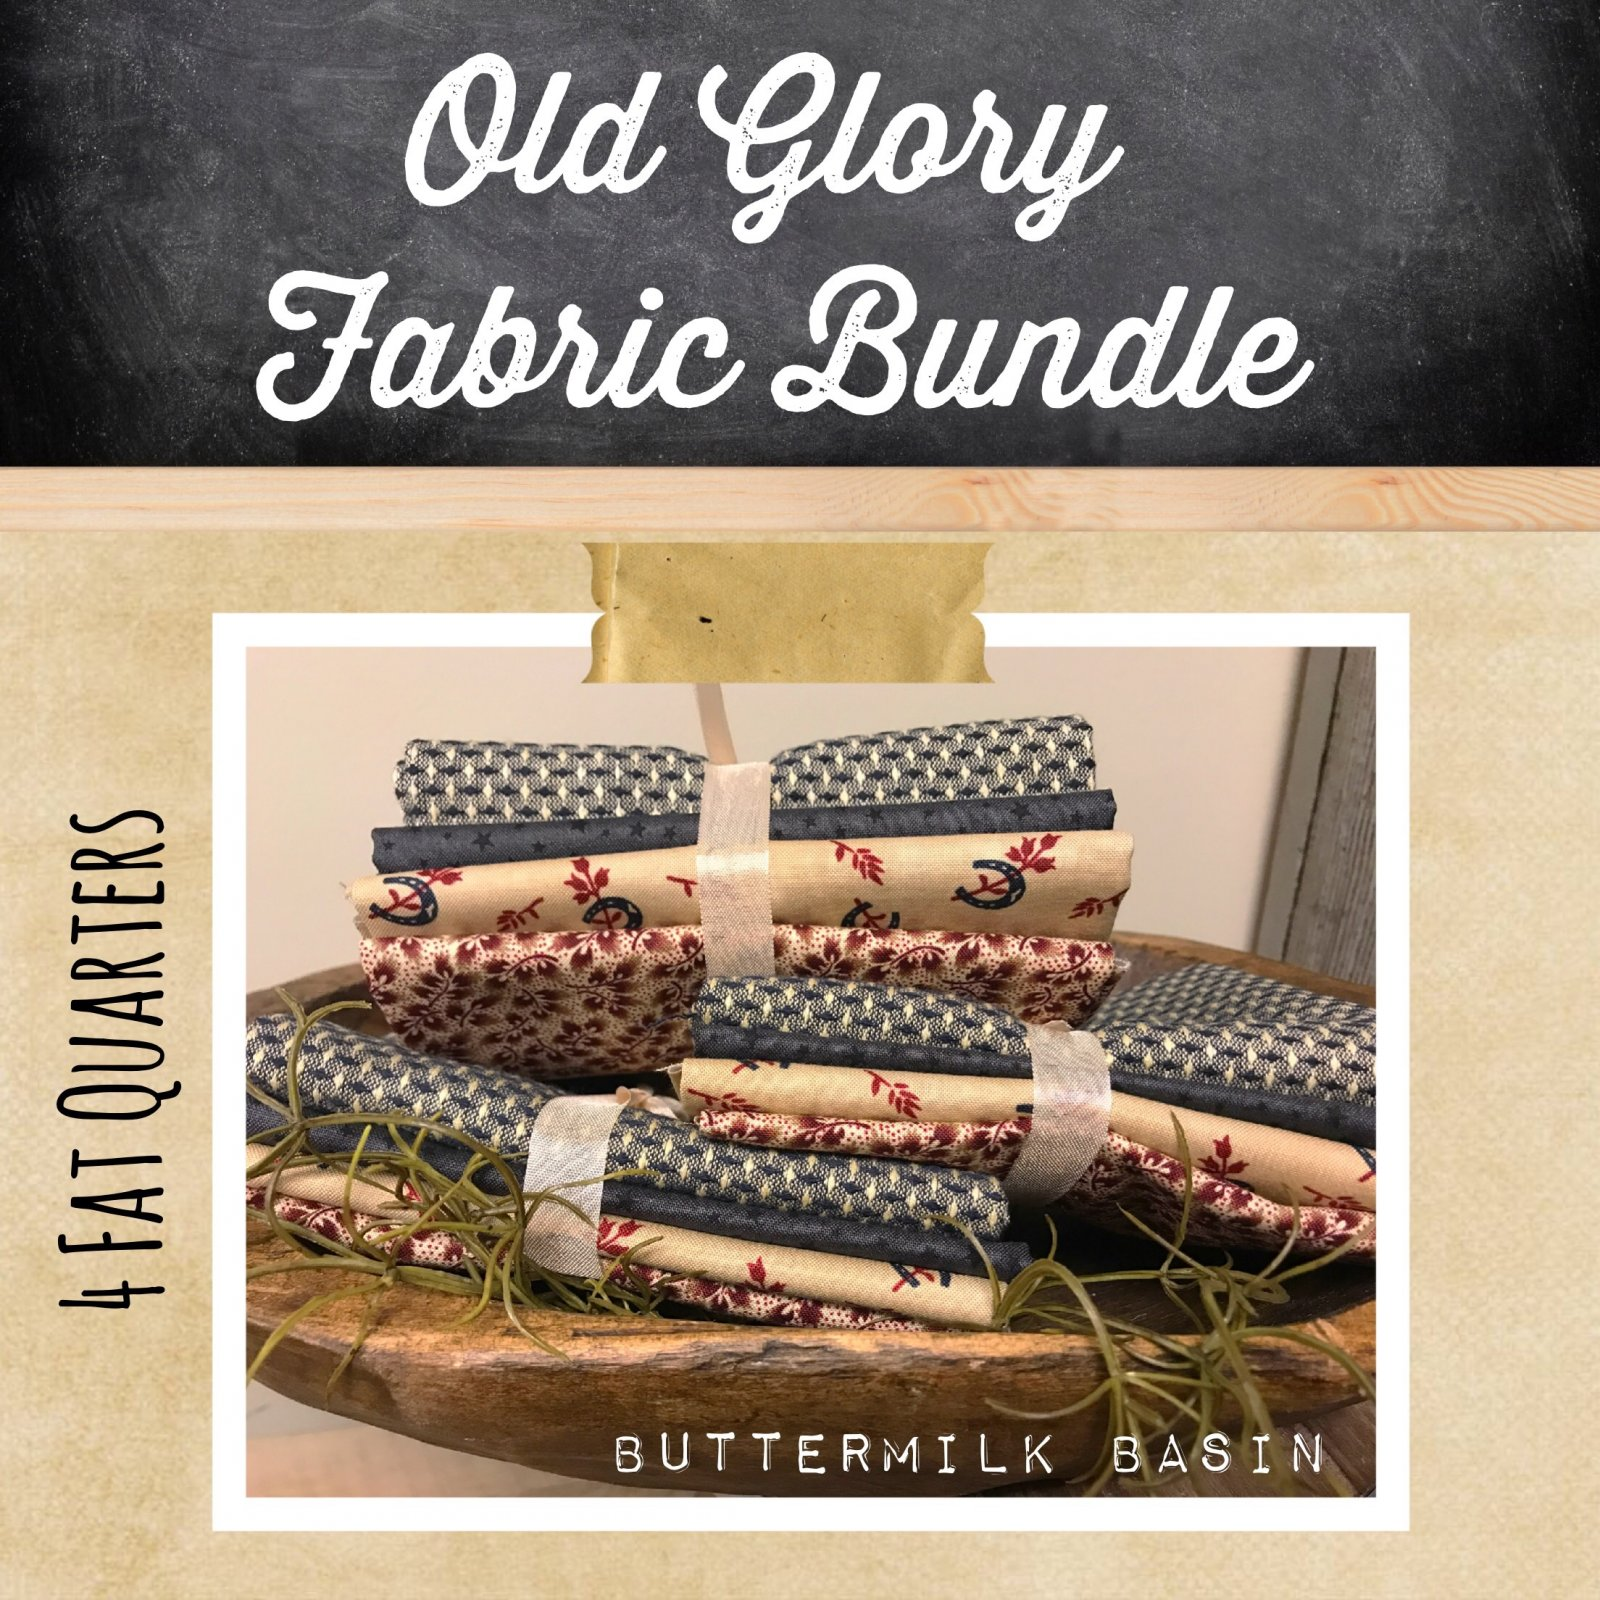 Old Glory Fabric Bundle